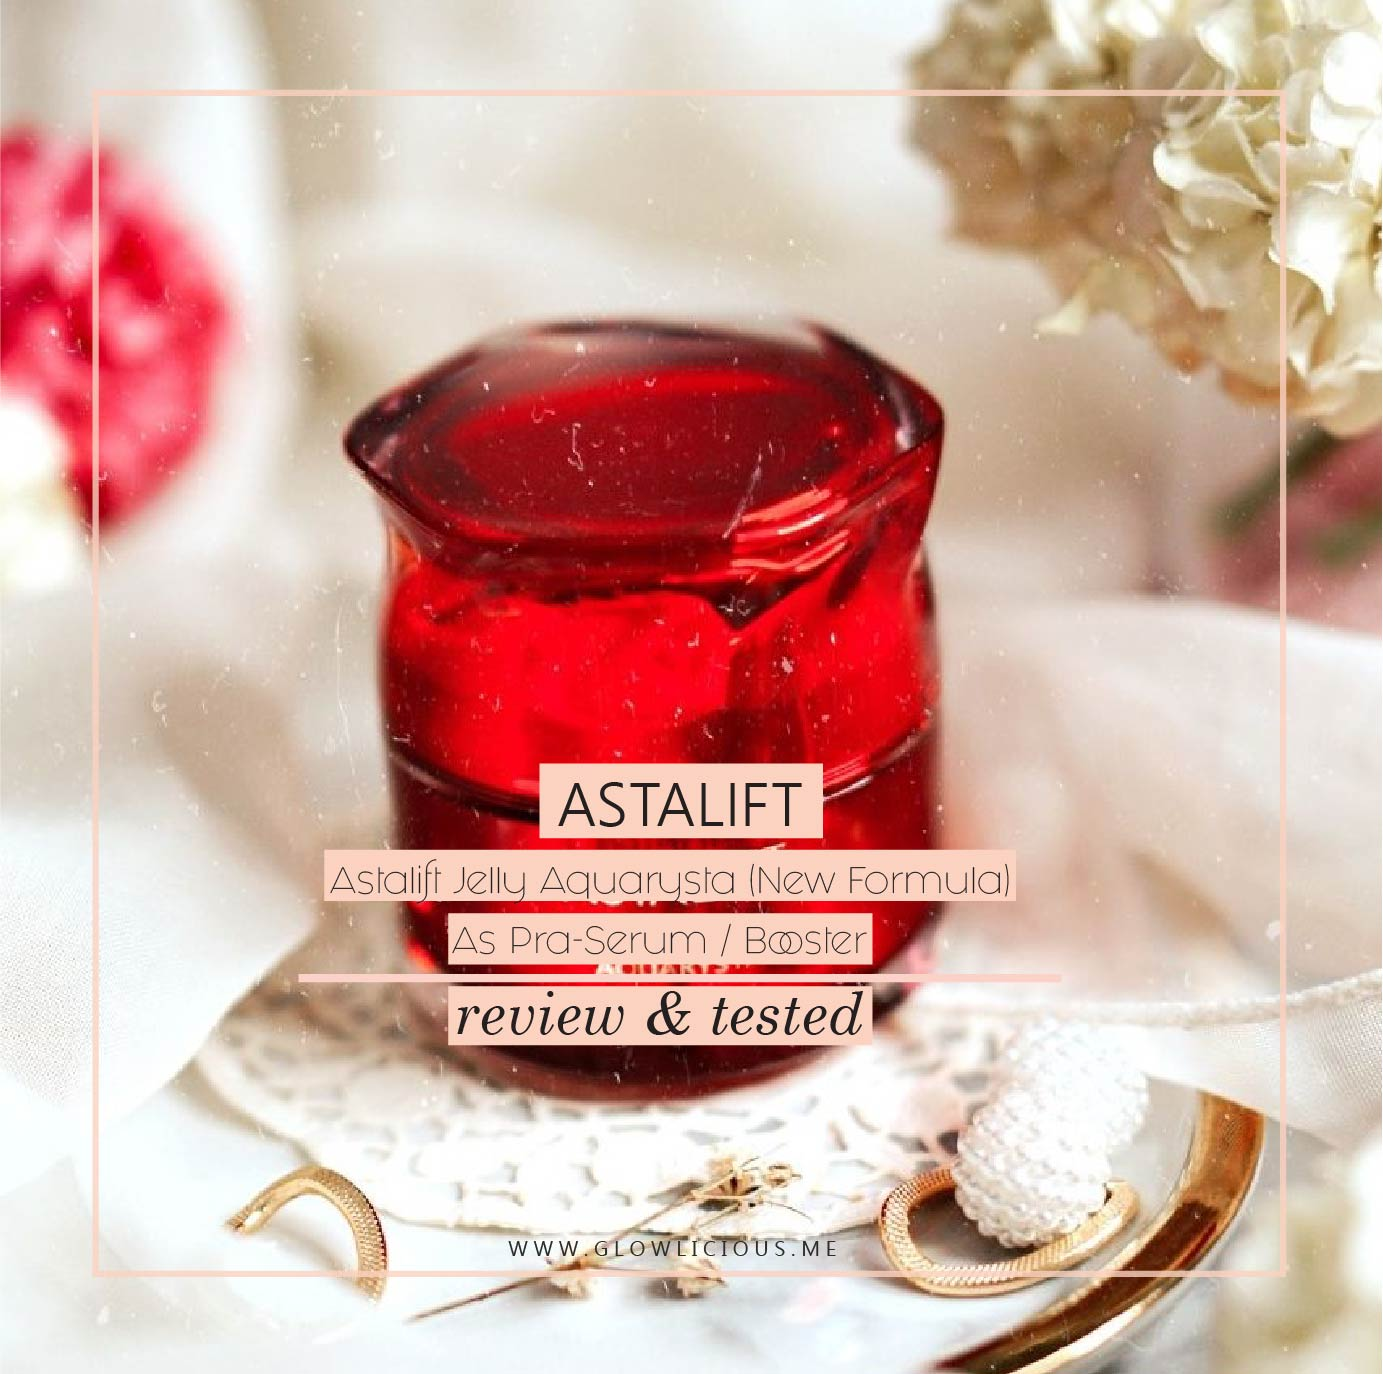 astalift anti aging products